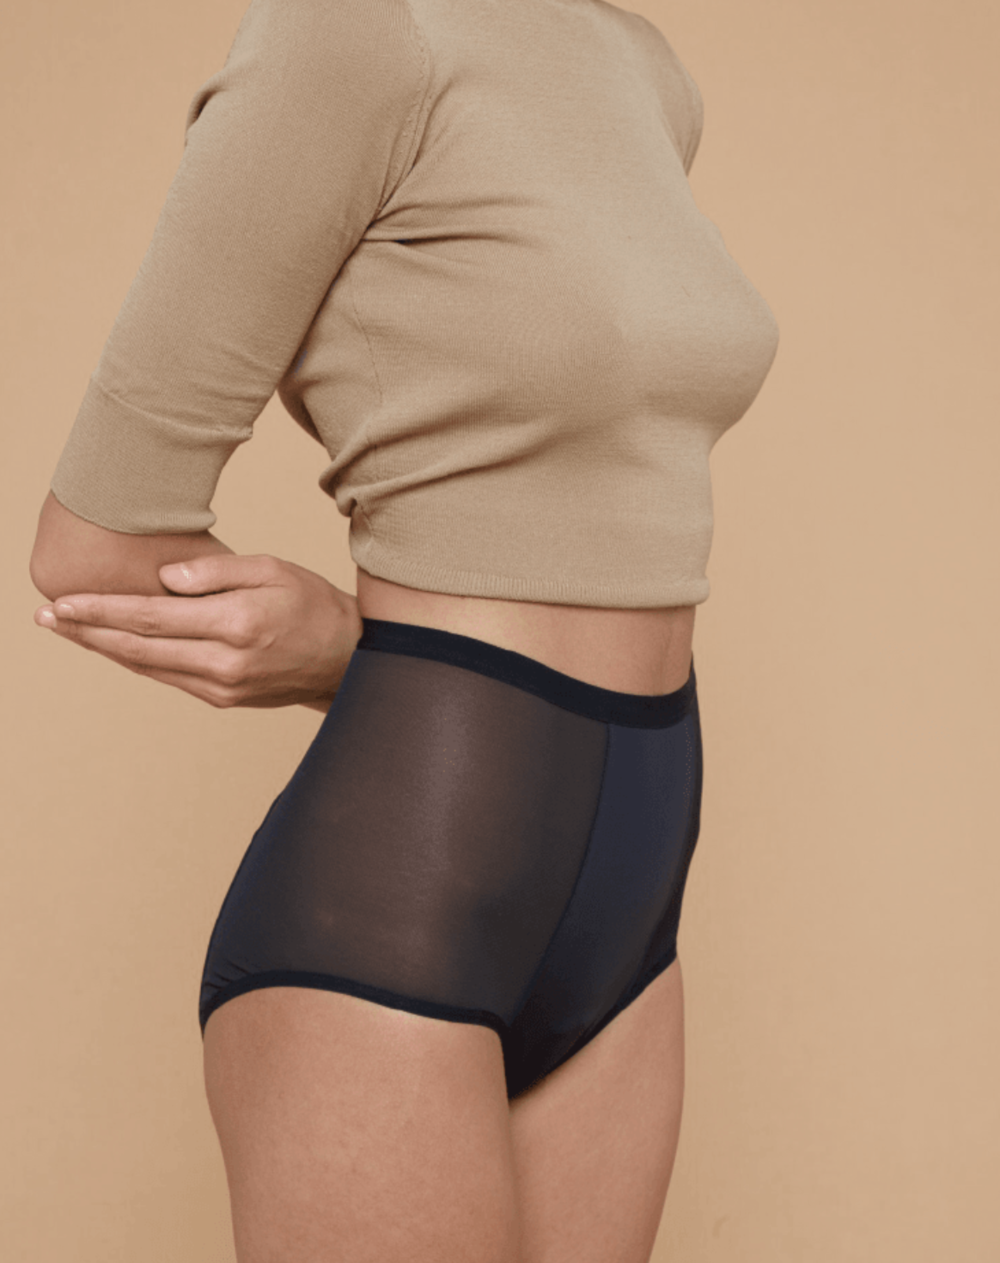 she thinx organic cotton period panties sustainable underwear